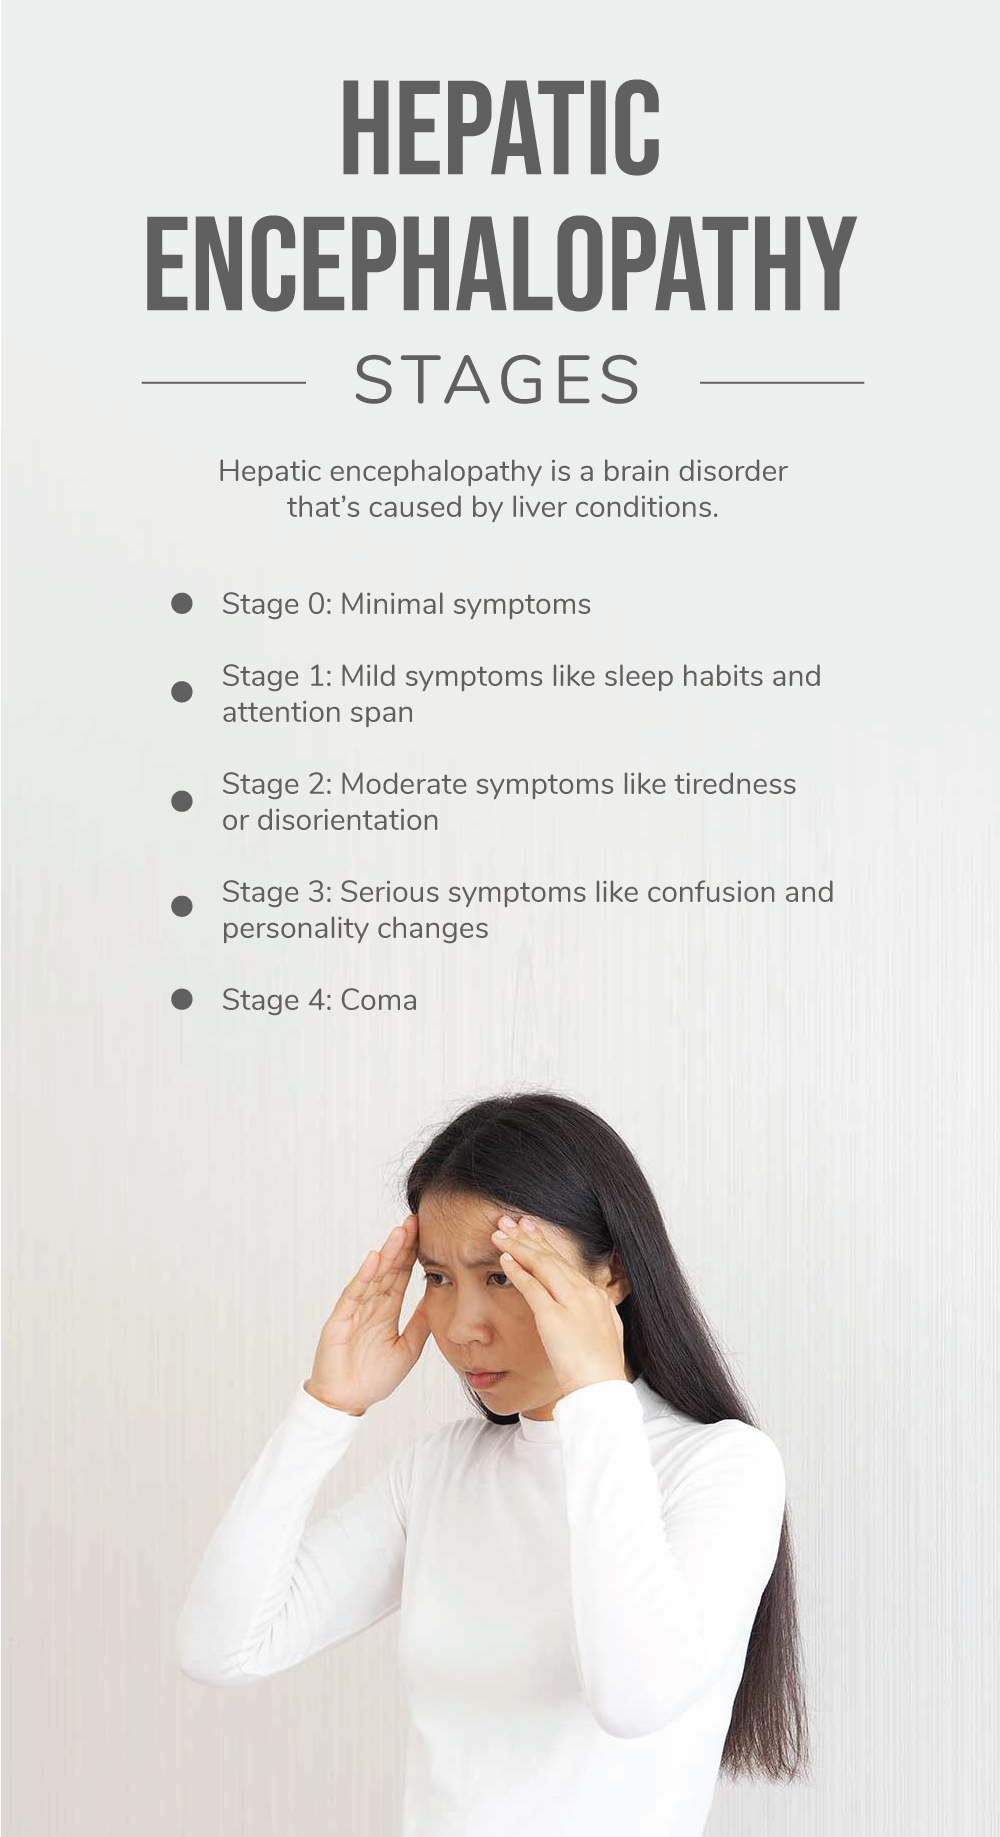 Hepatic Encephalopathy Stages